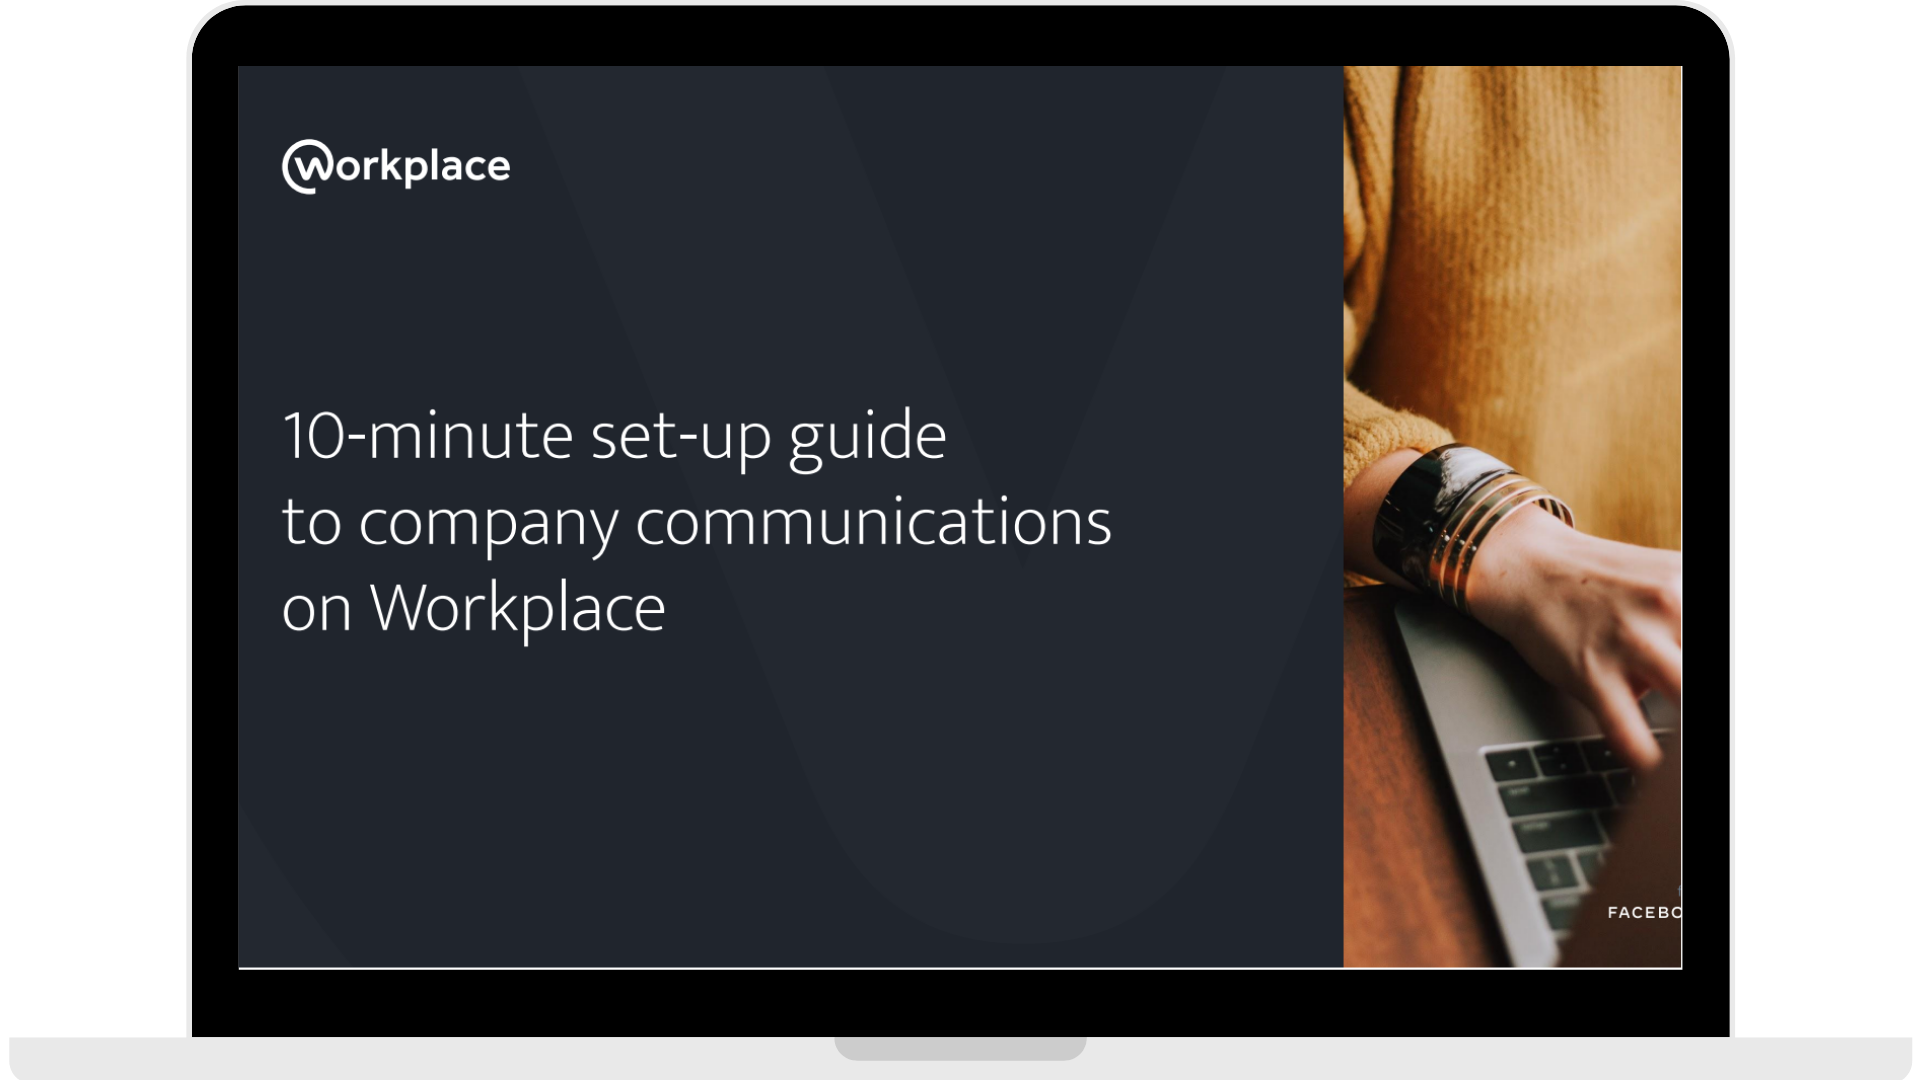 WPF - 10-minute set-up guide to company communications on Workplace - Laptop - Transparent